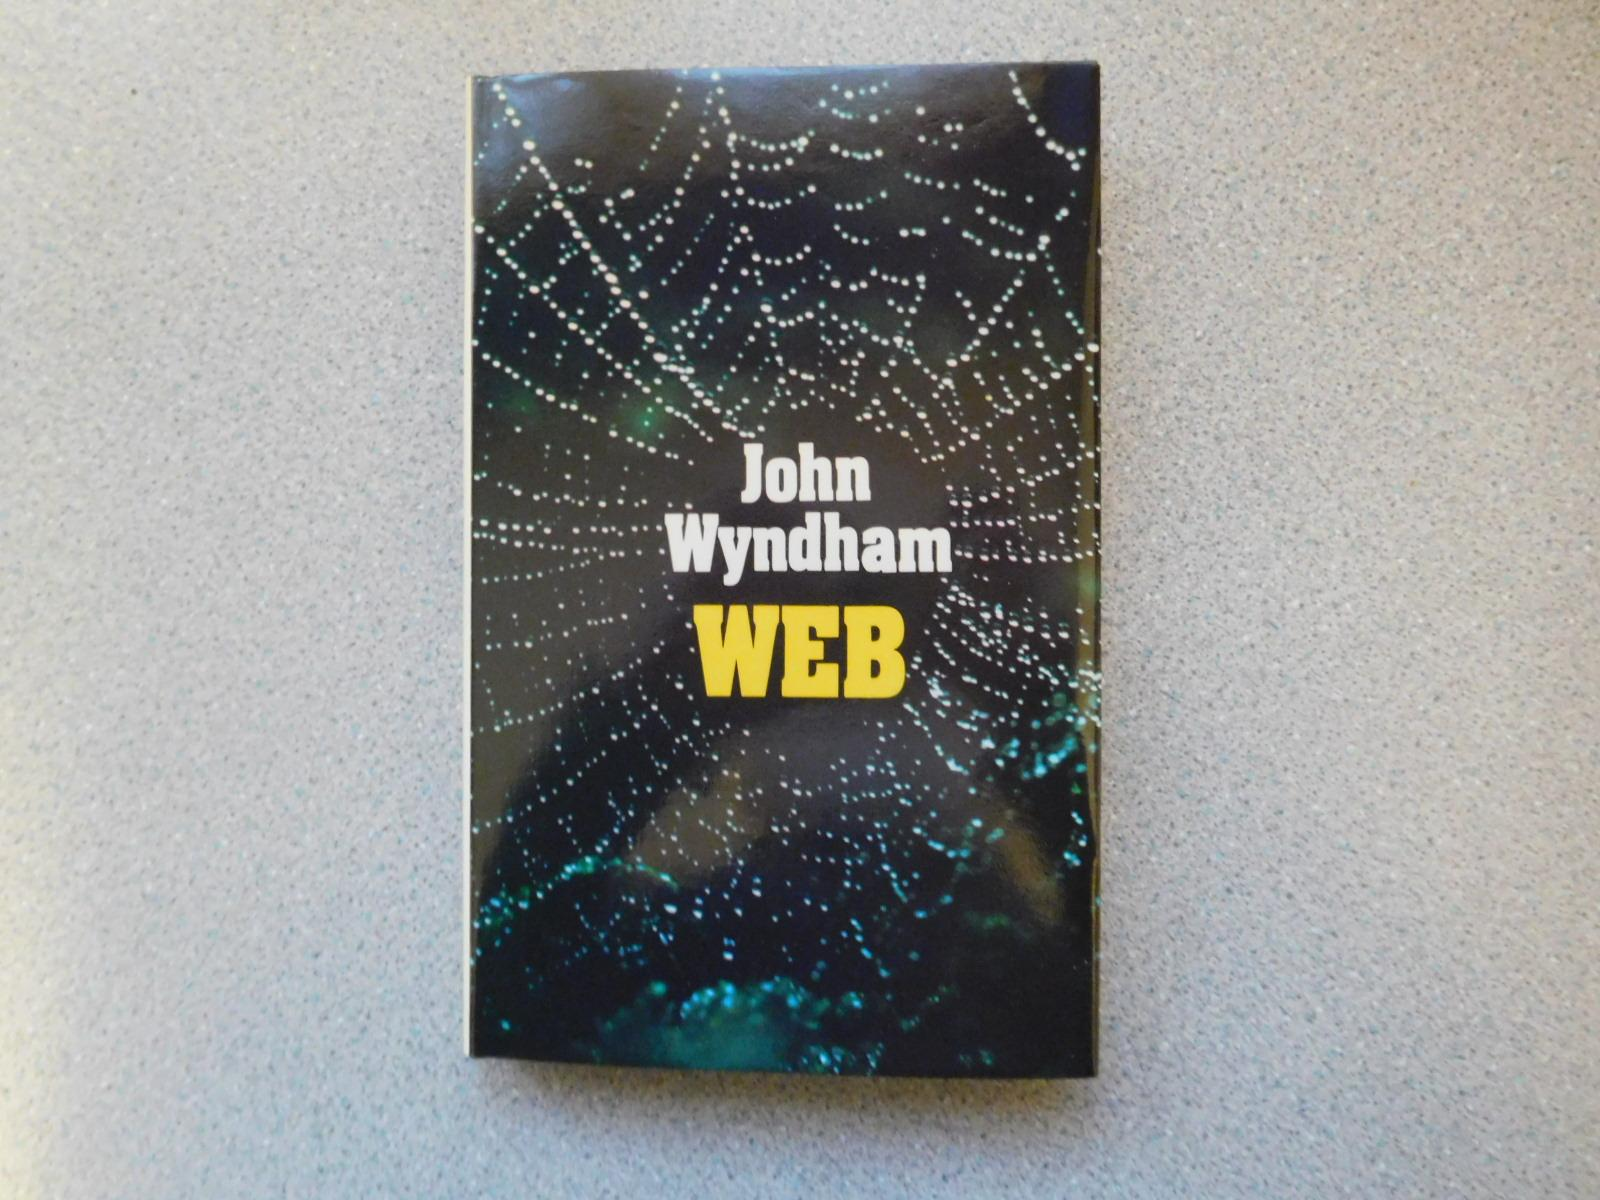 meteor by john wyndham Meteor and other stories john wyndham 40 to hurt somebody with a poisonous point a f naked b f sting c f evil d f bully 20 marks plot choose the best answer 41 onn wrote that they had come to a _____ a f square planet b f world of straight lines c f strange place d f calm place.